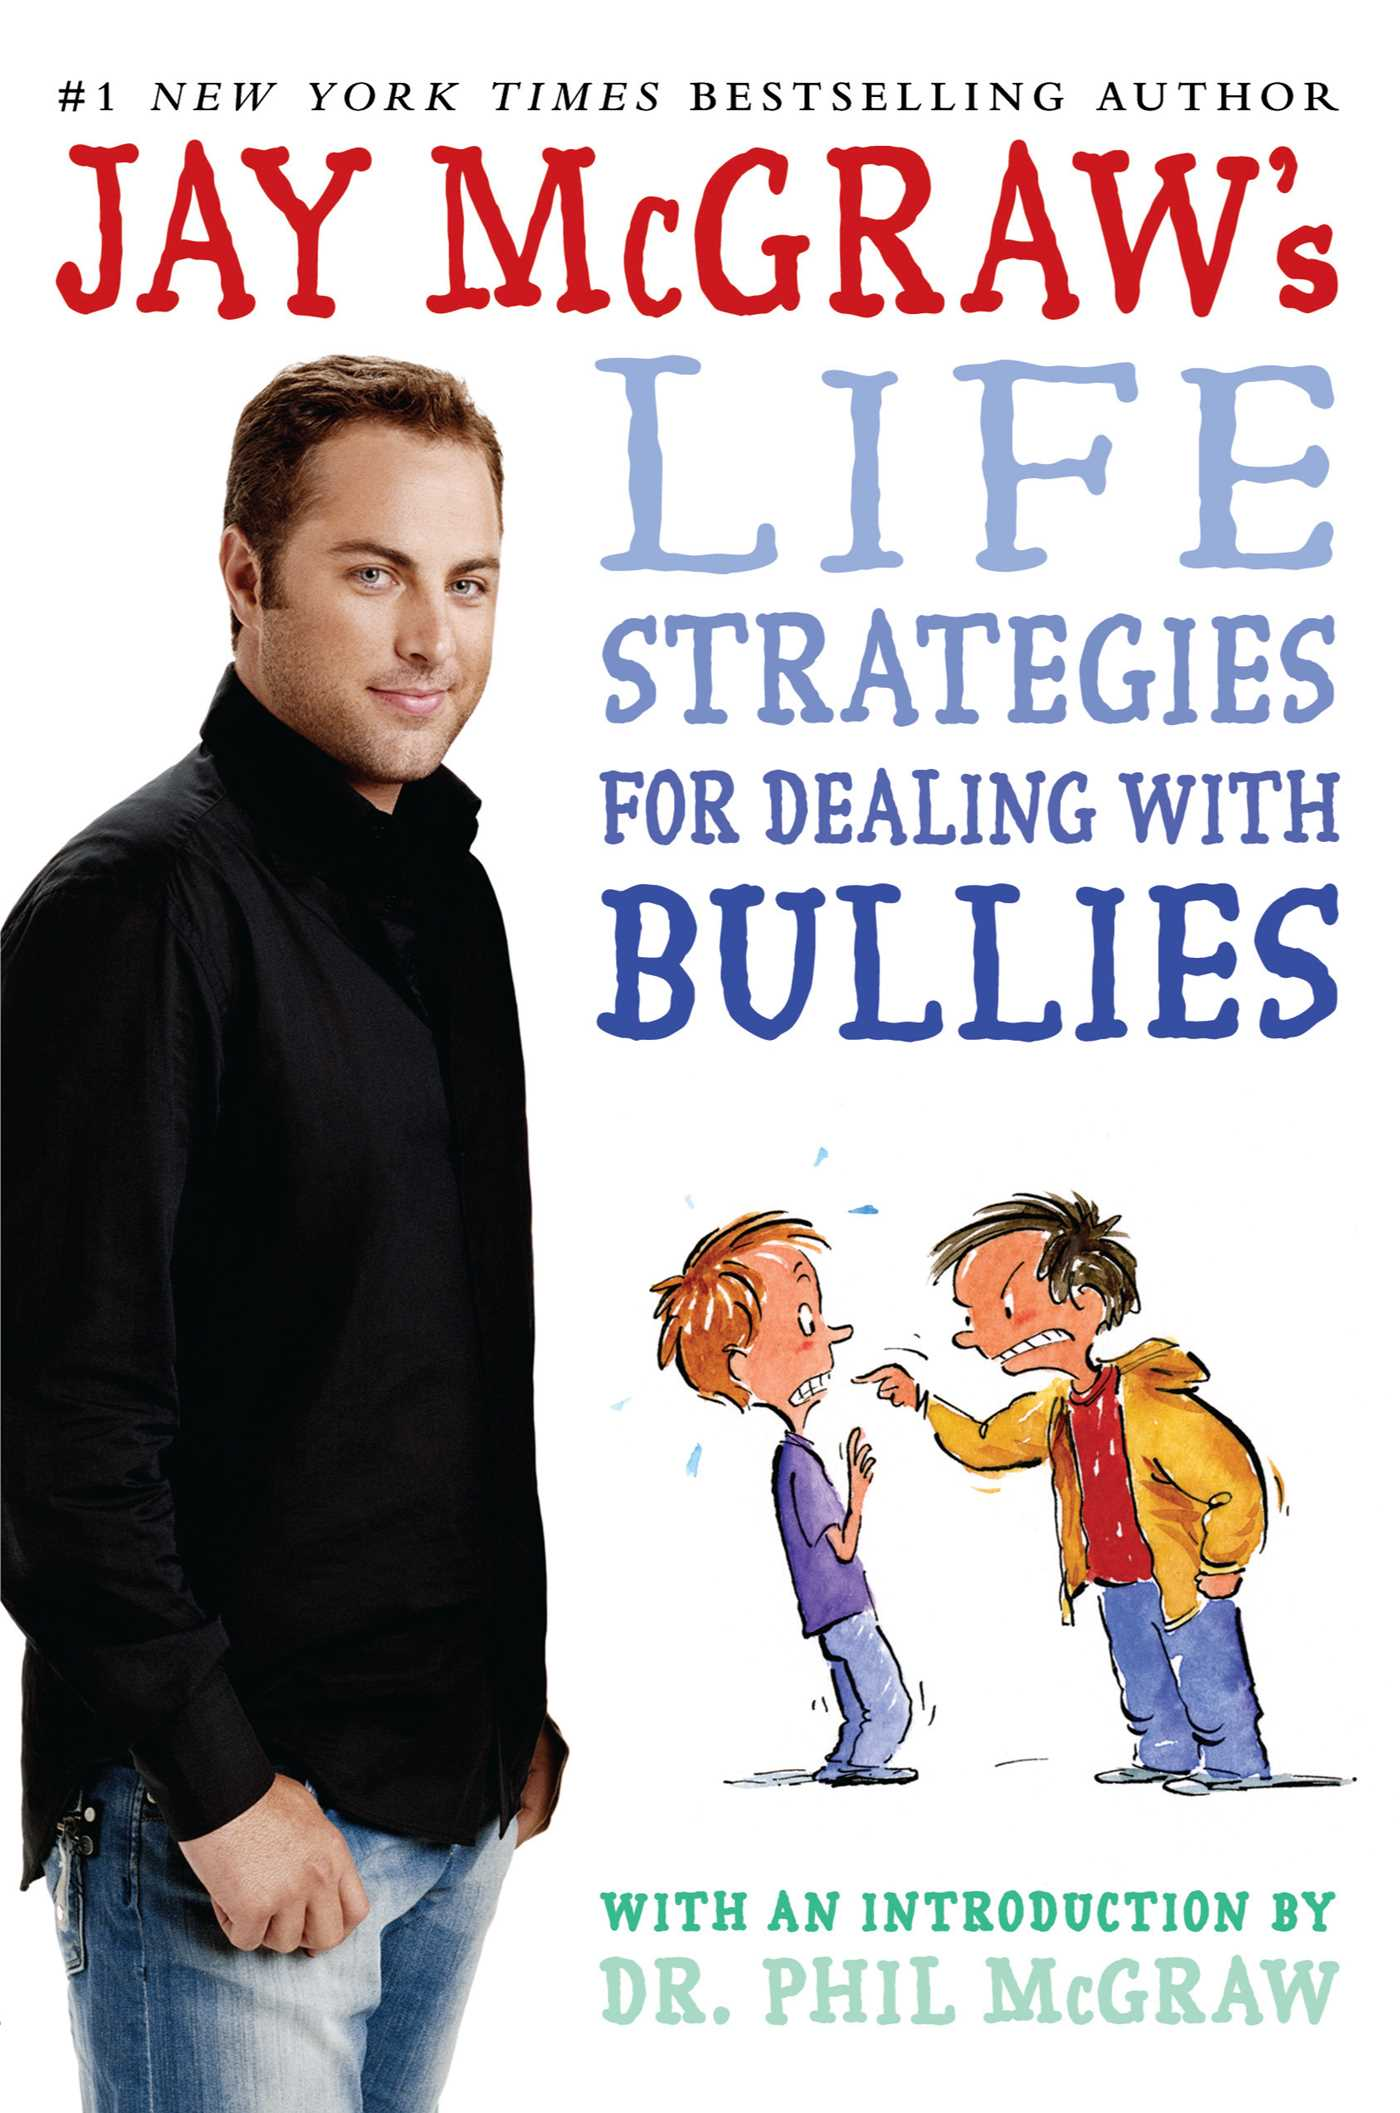 Jay mcgraws life strategies for dealing with bullies 9781442407107 hr